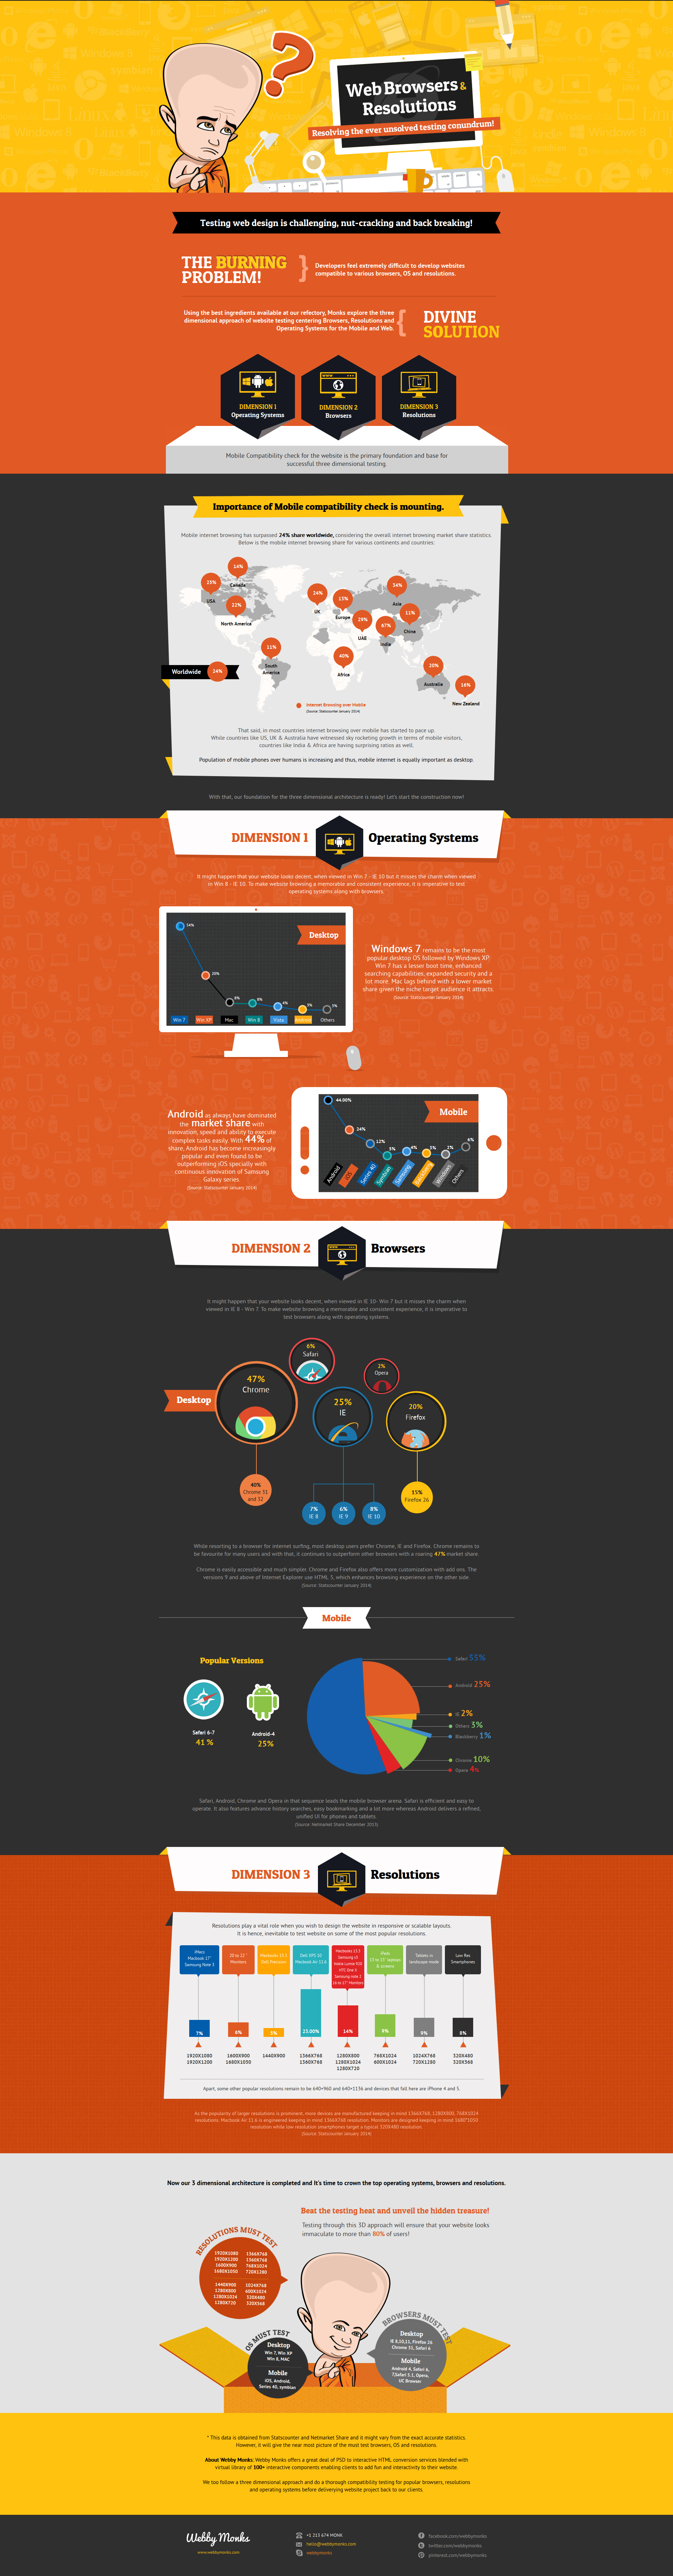 Website Testing Infographic